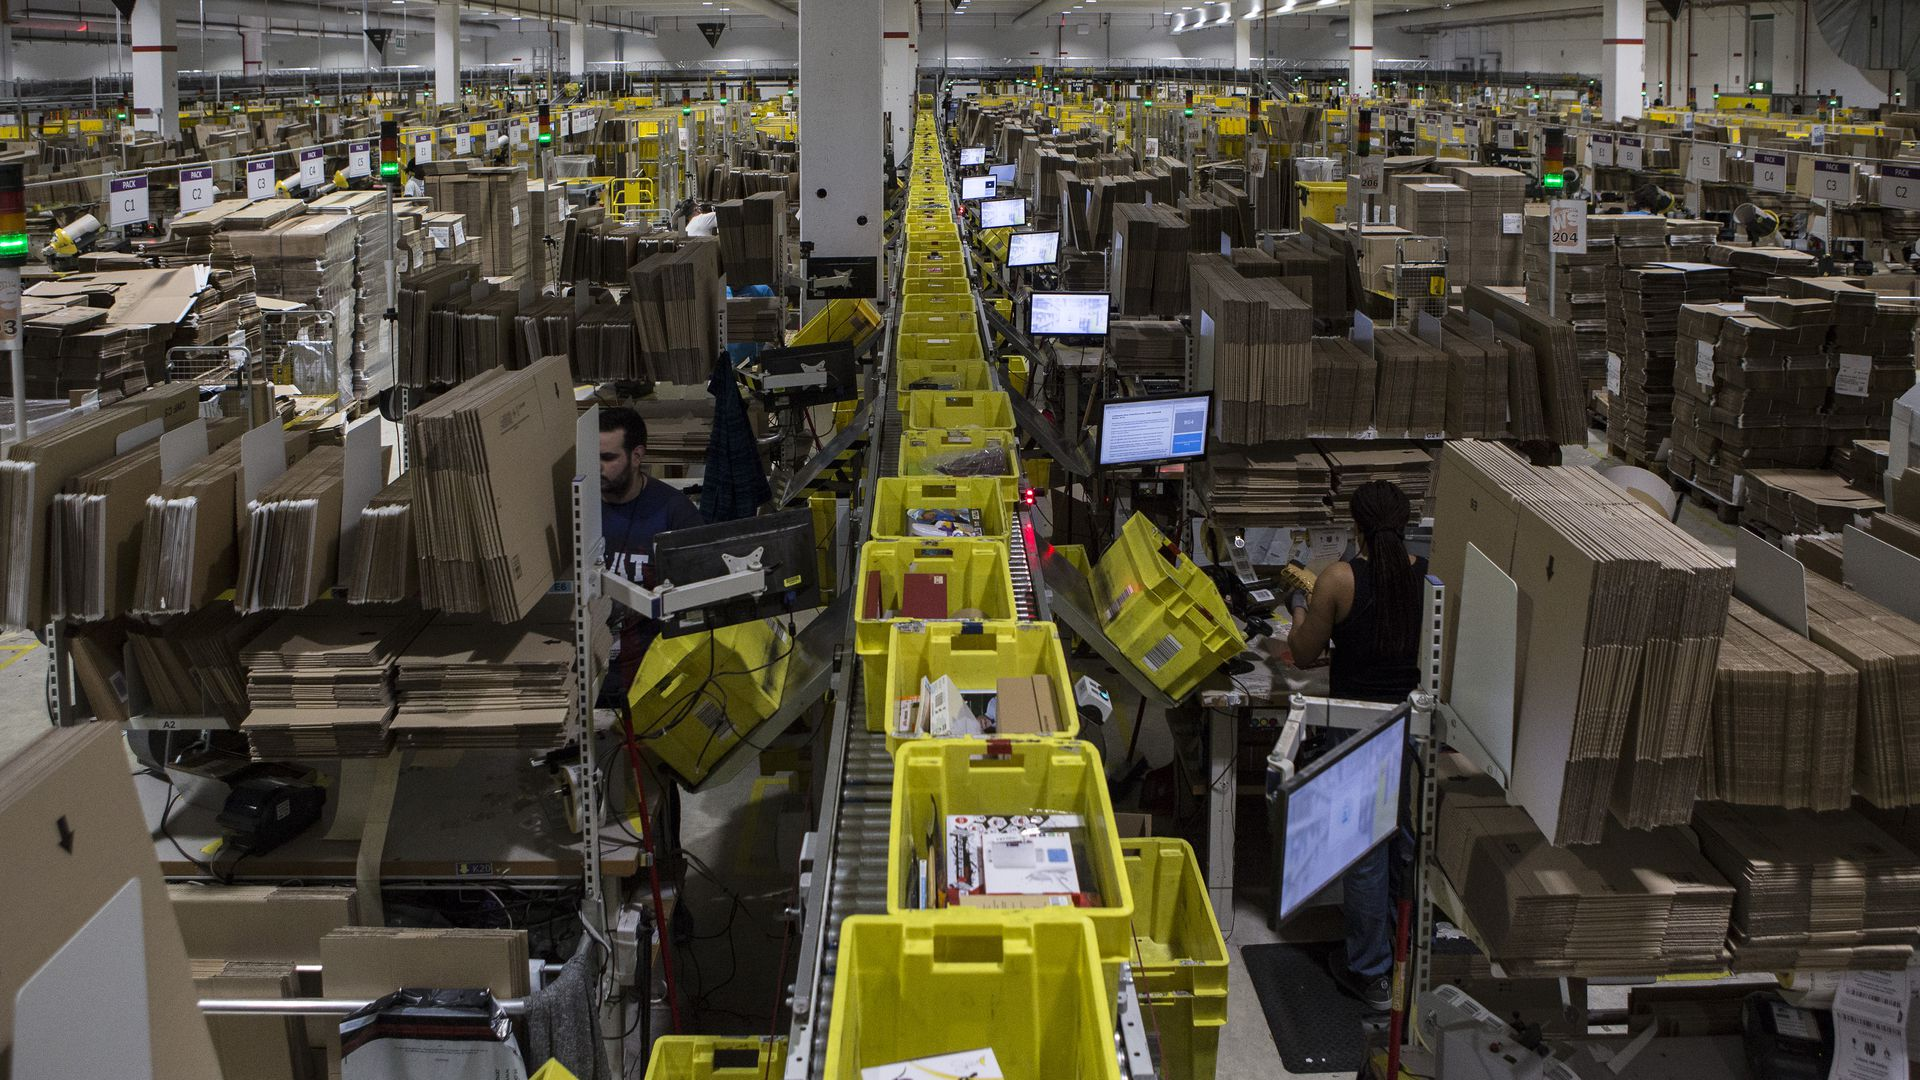 An assembly line of boxes in a warehouse